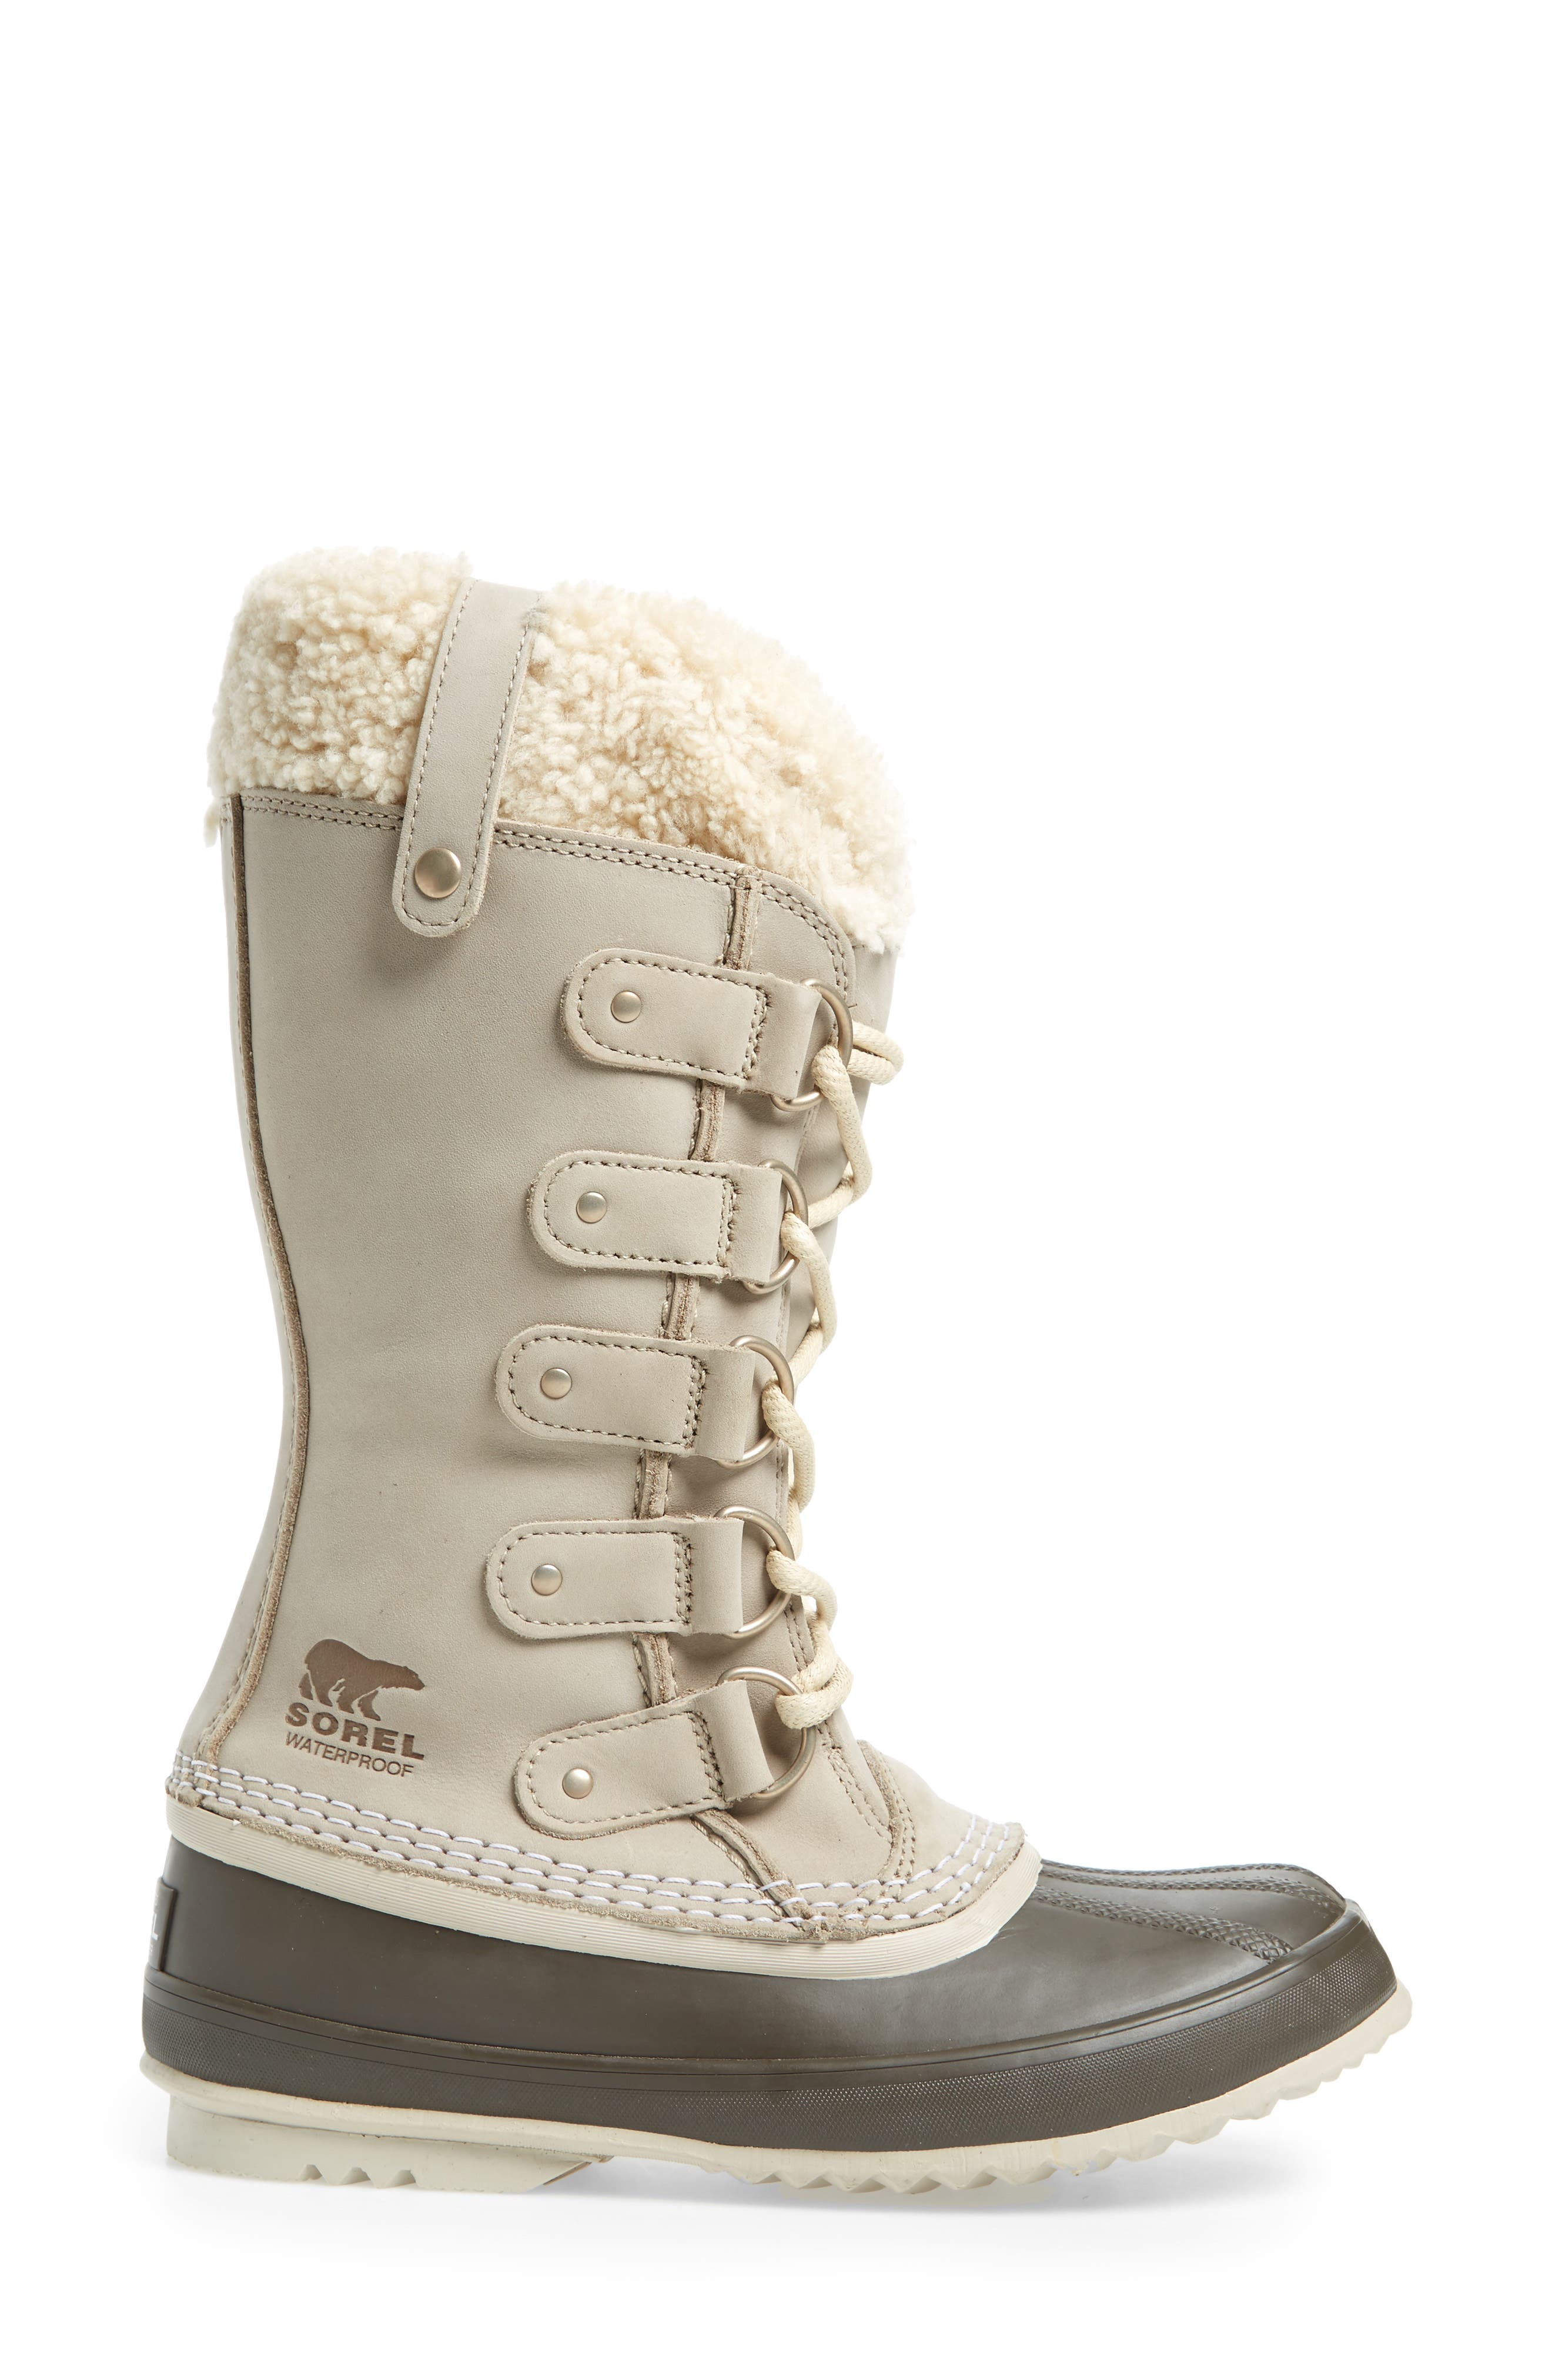 Joan of Arctic<sup>™</sup> Lux Waterproof Winter Boot with Genuine  Shearling Cuff,                             Alternate thumbnail 3, color,                             Ancient Fossil/ Mud